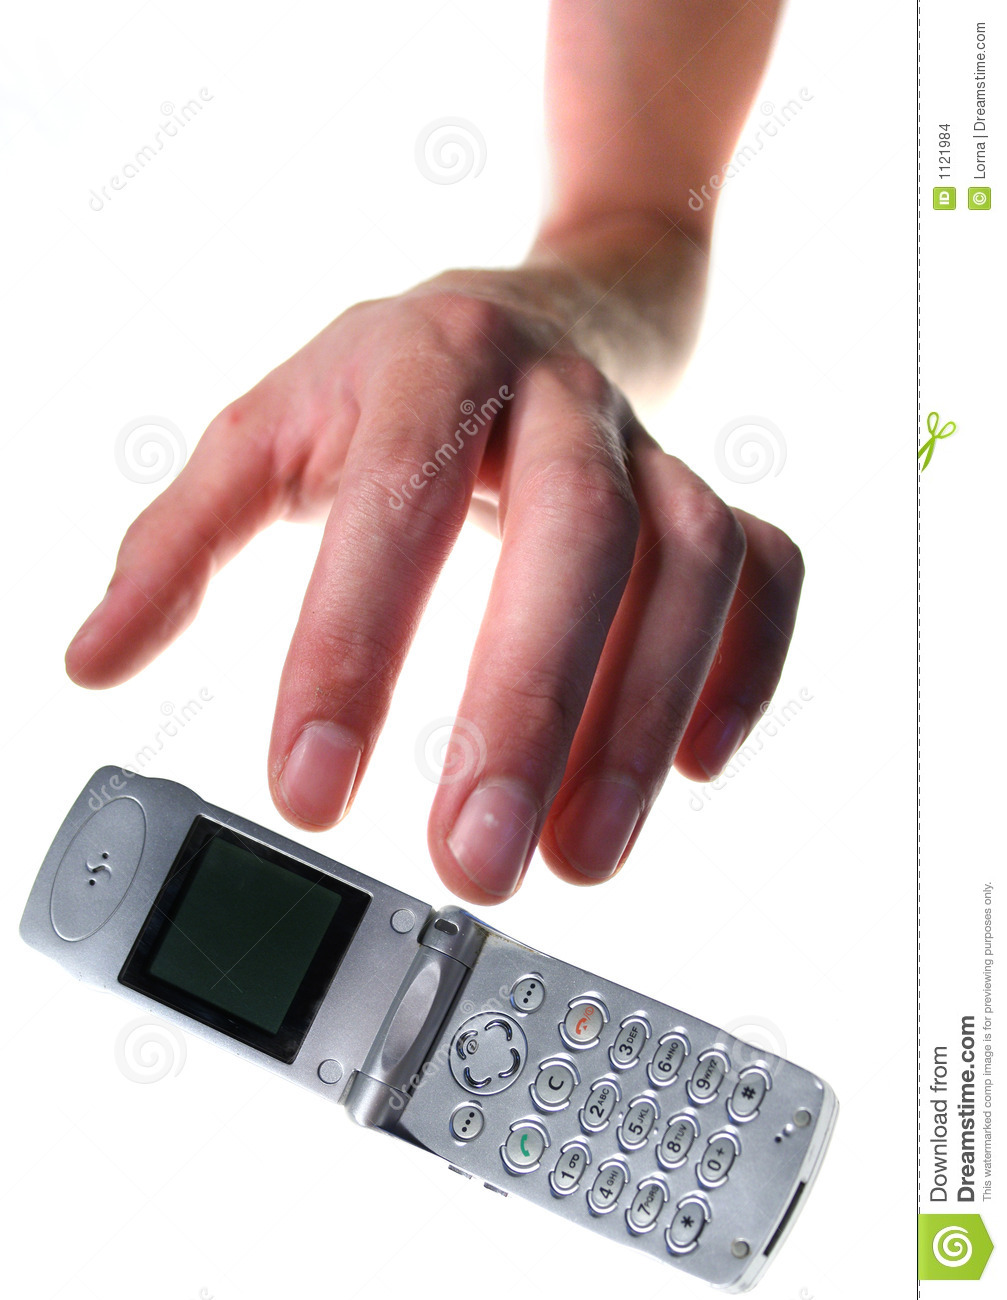 Hand reaching for mobile phone